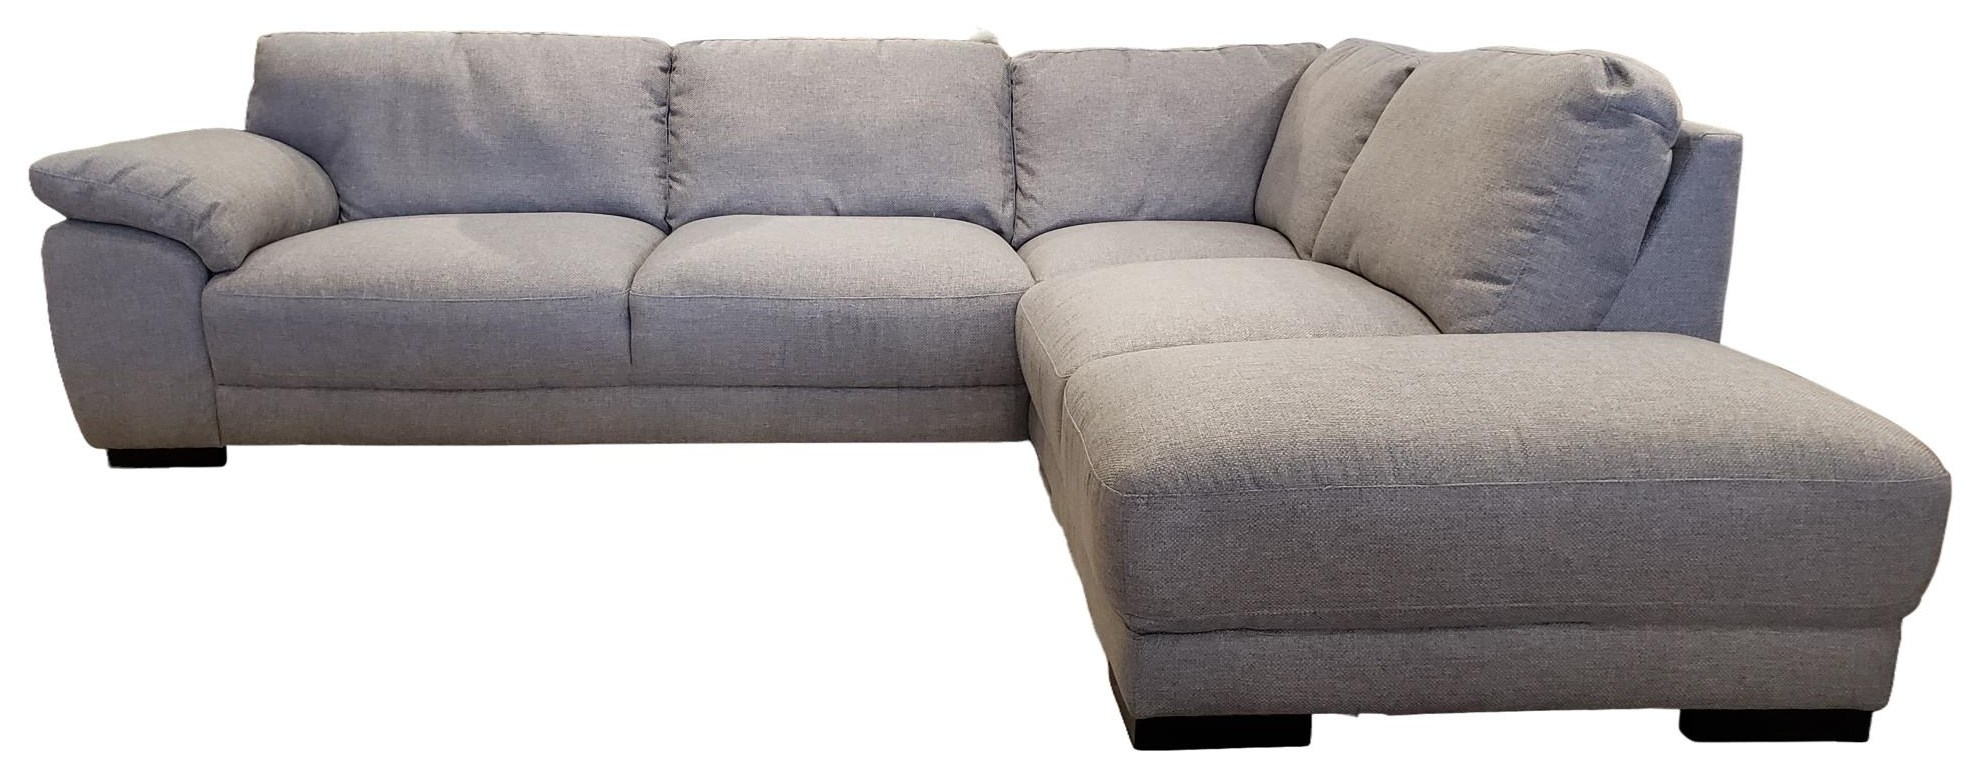 77410 PA77410 by Palliser at Upper Room Home Furnishings